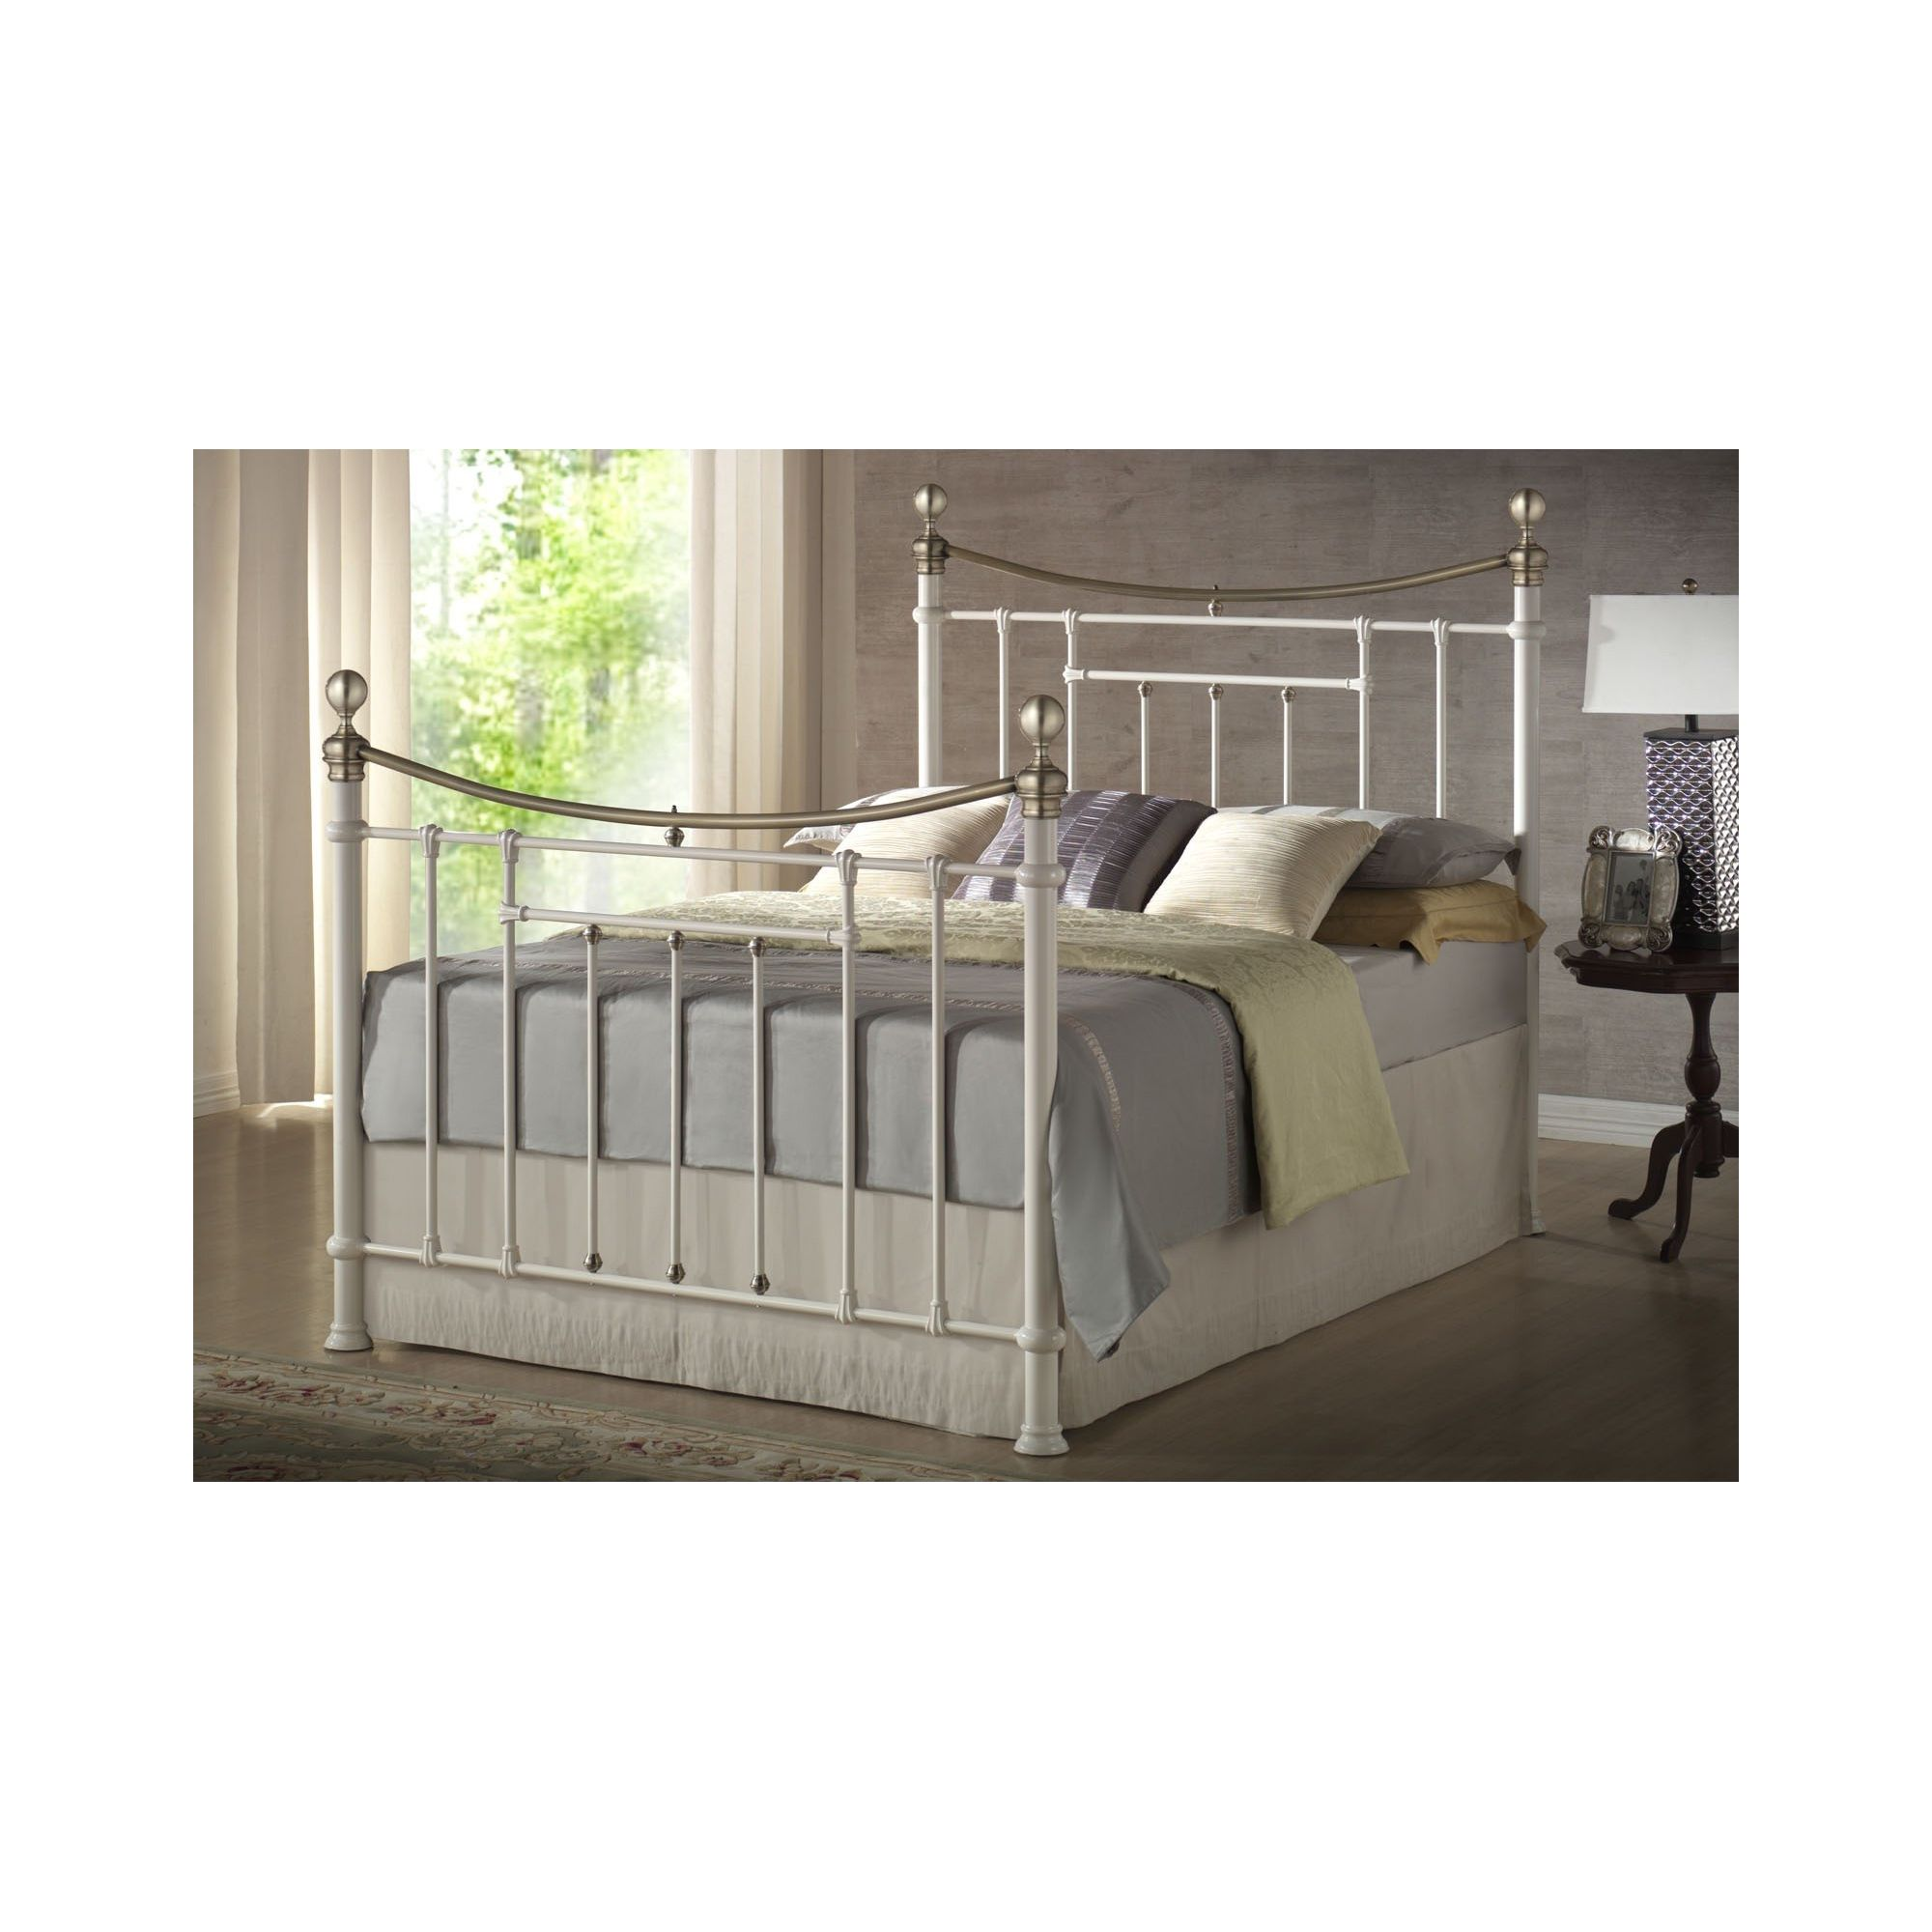 Birlea Bronte Metal Bed Frame - Double - Cream at Tesco Direct